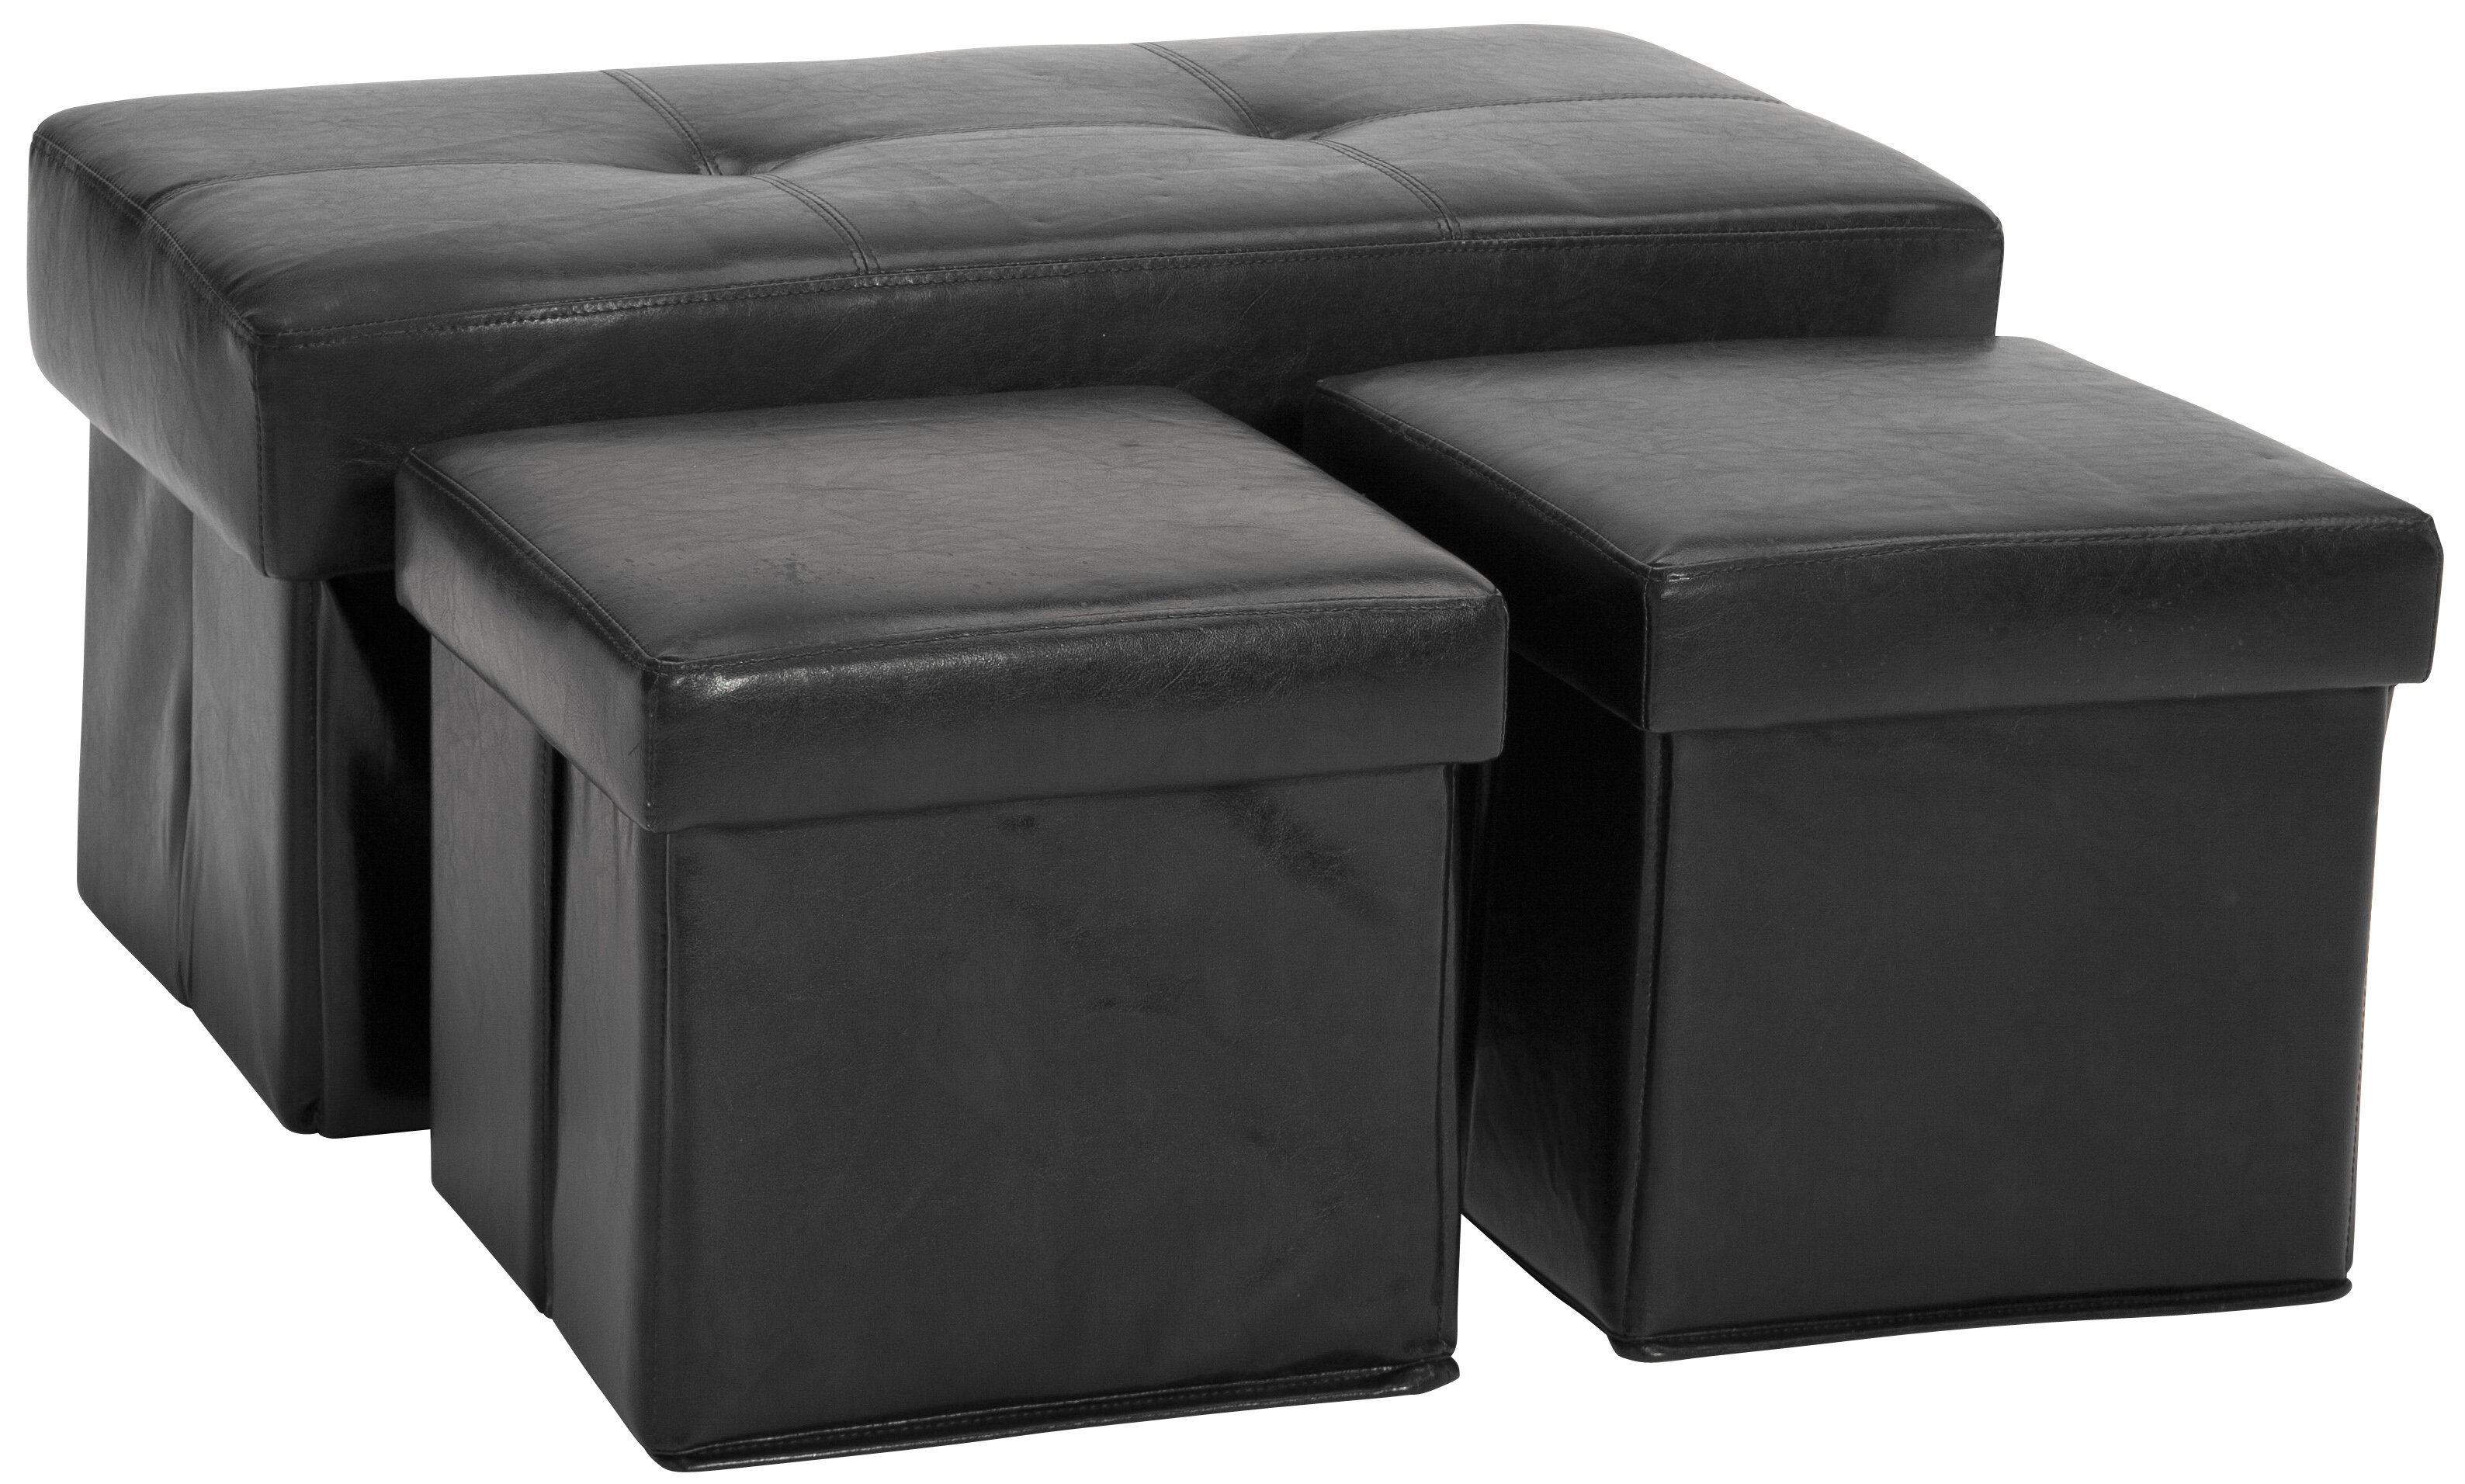 Wondrous 3 Piece Storage Ottoman Set Gmtry Best Dining Table And Chair Ideas Images Gmtryco